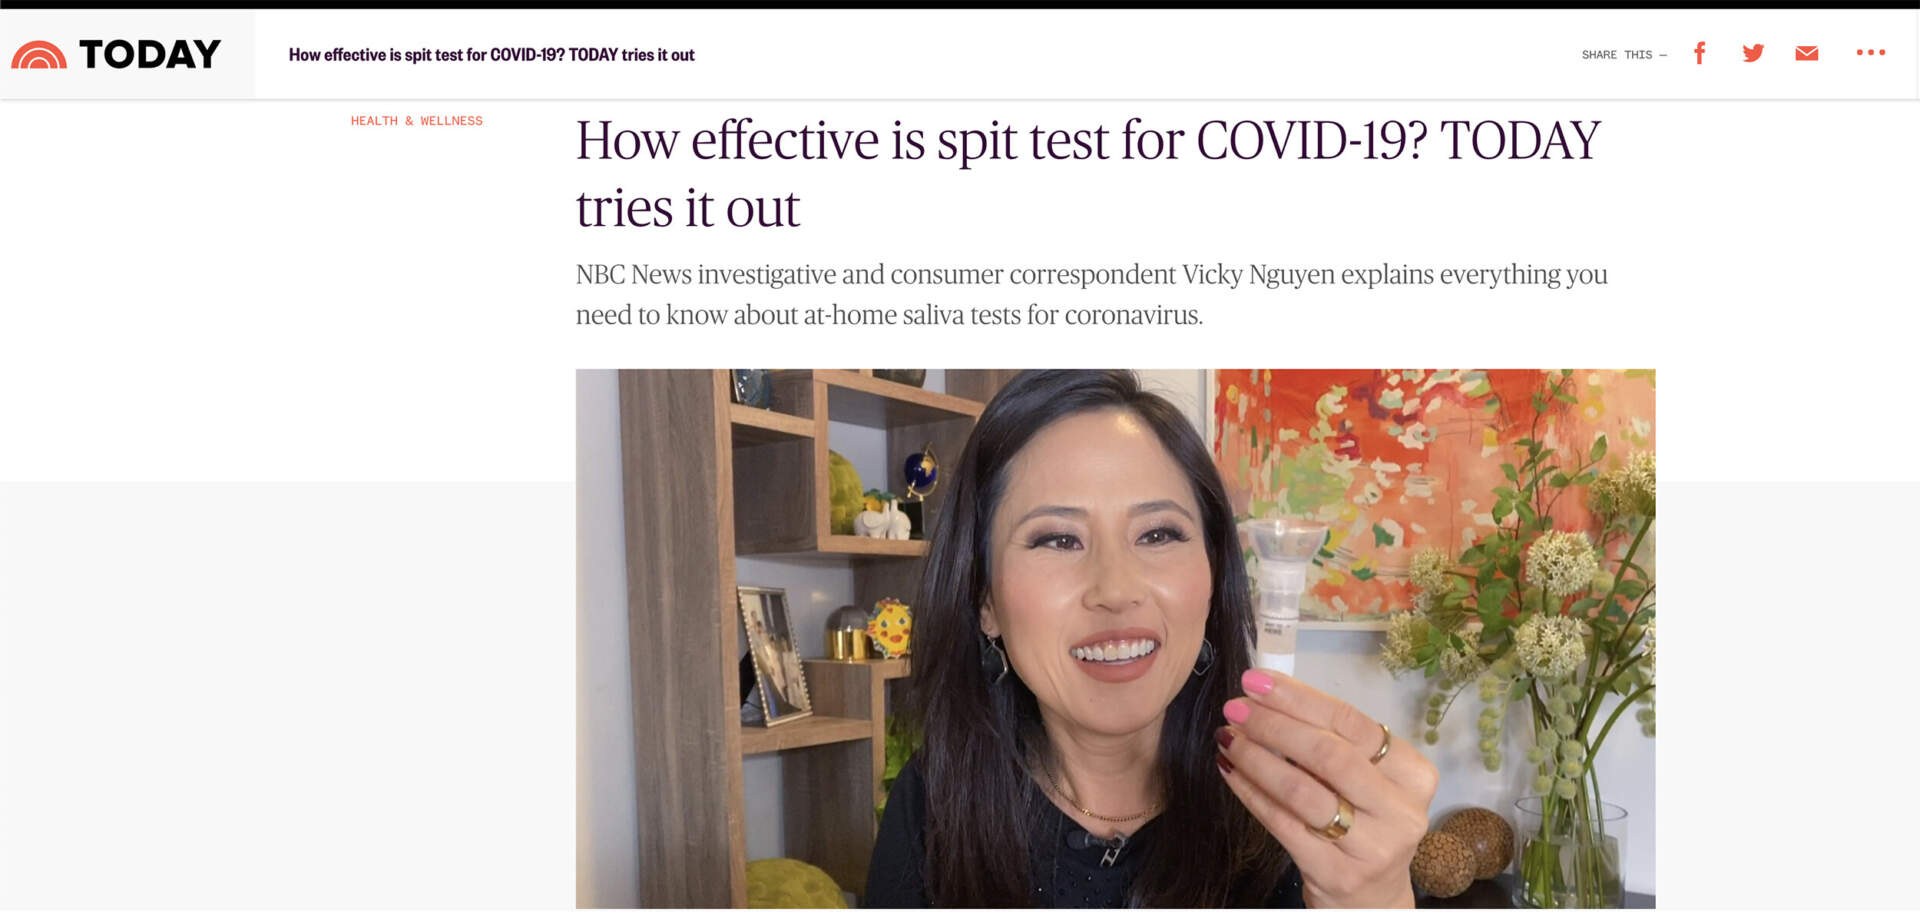 TODAY Show- How effective is spit test for COVID-19 TODAY tries it out